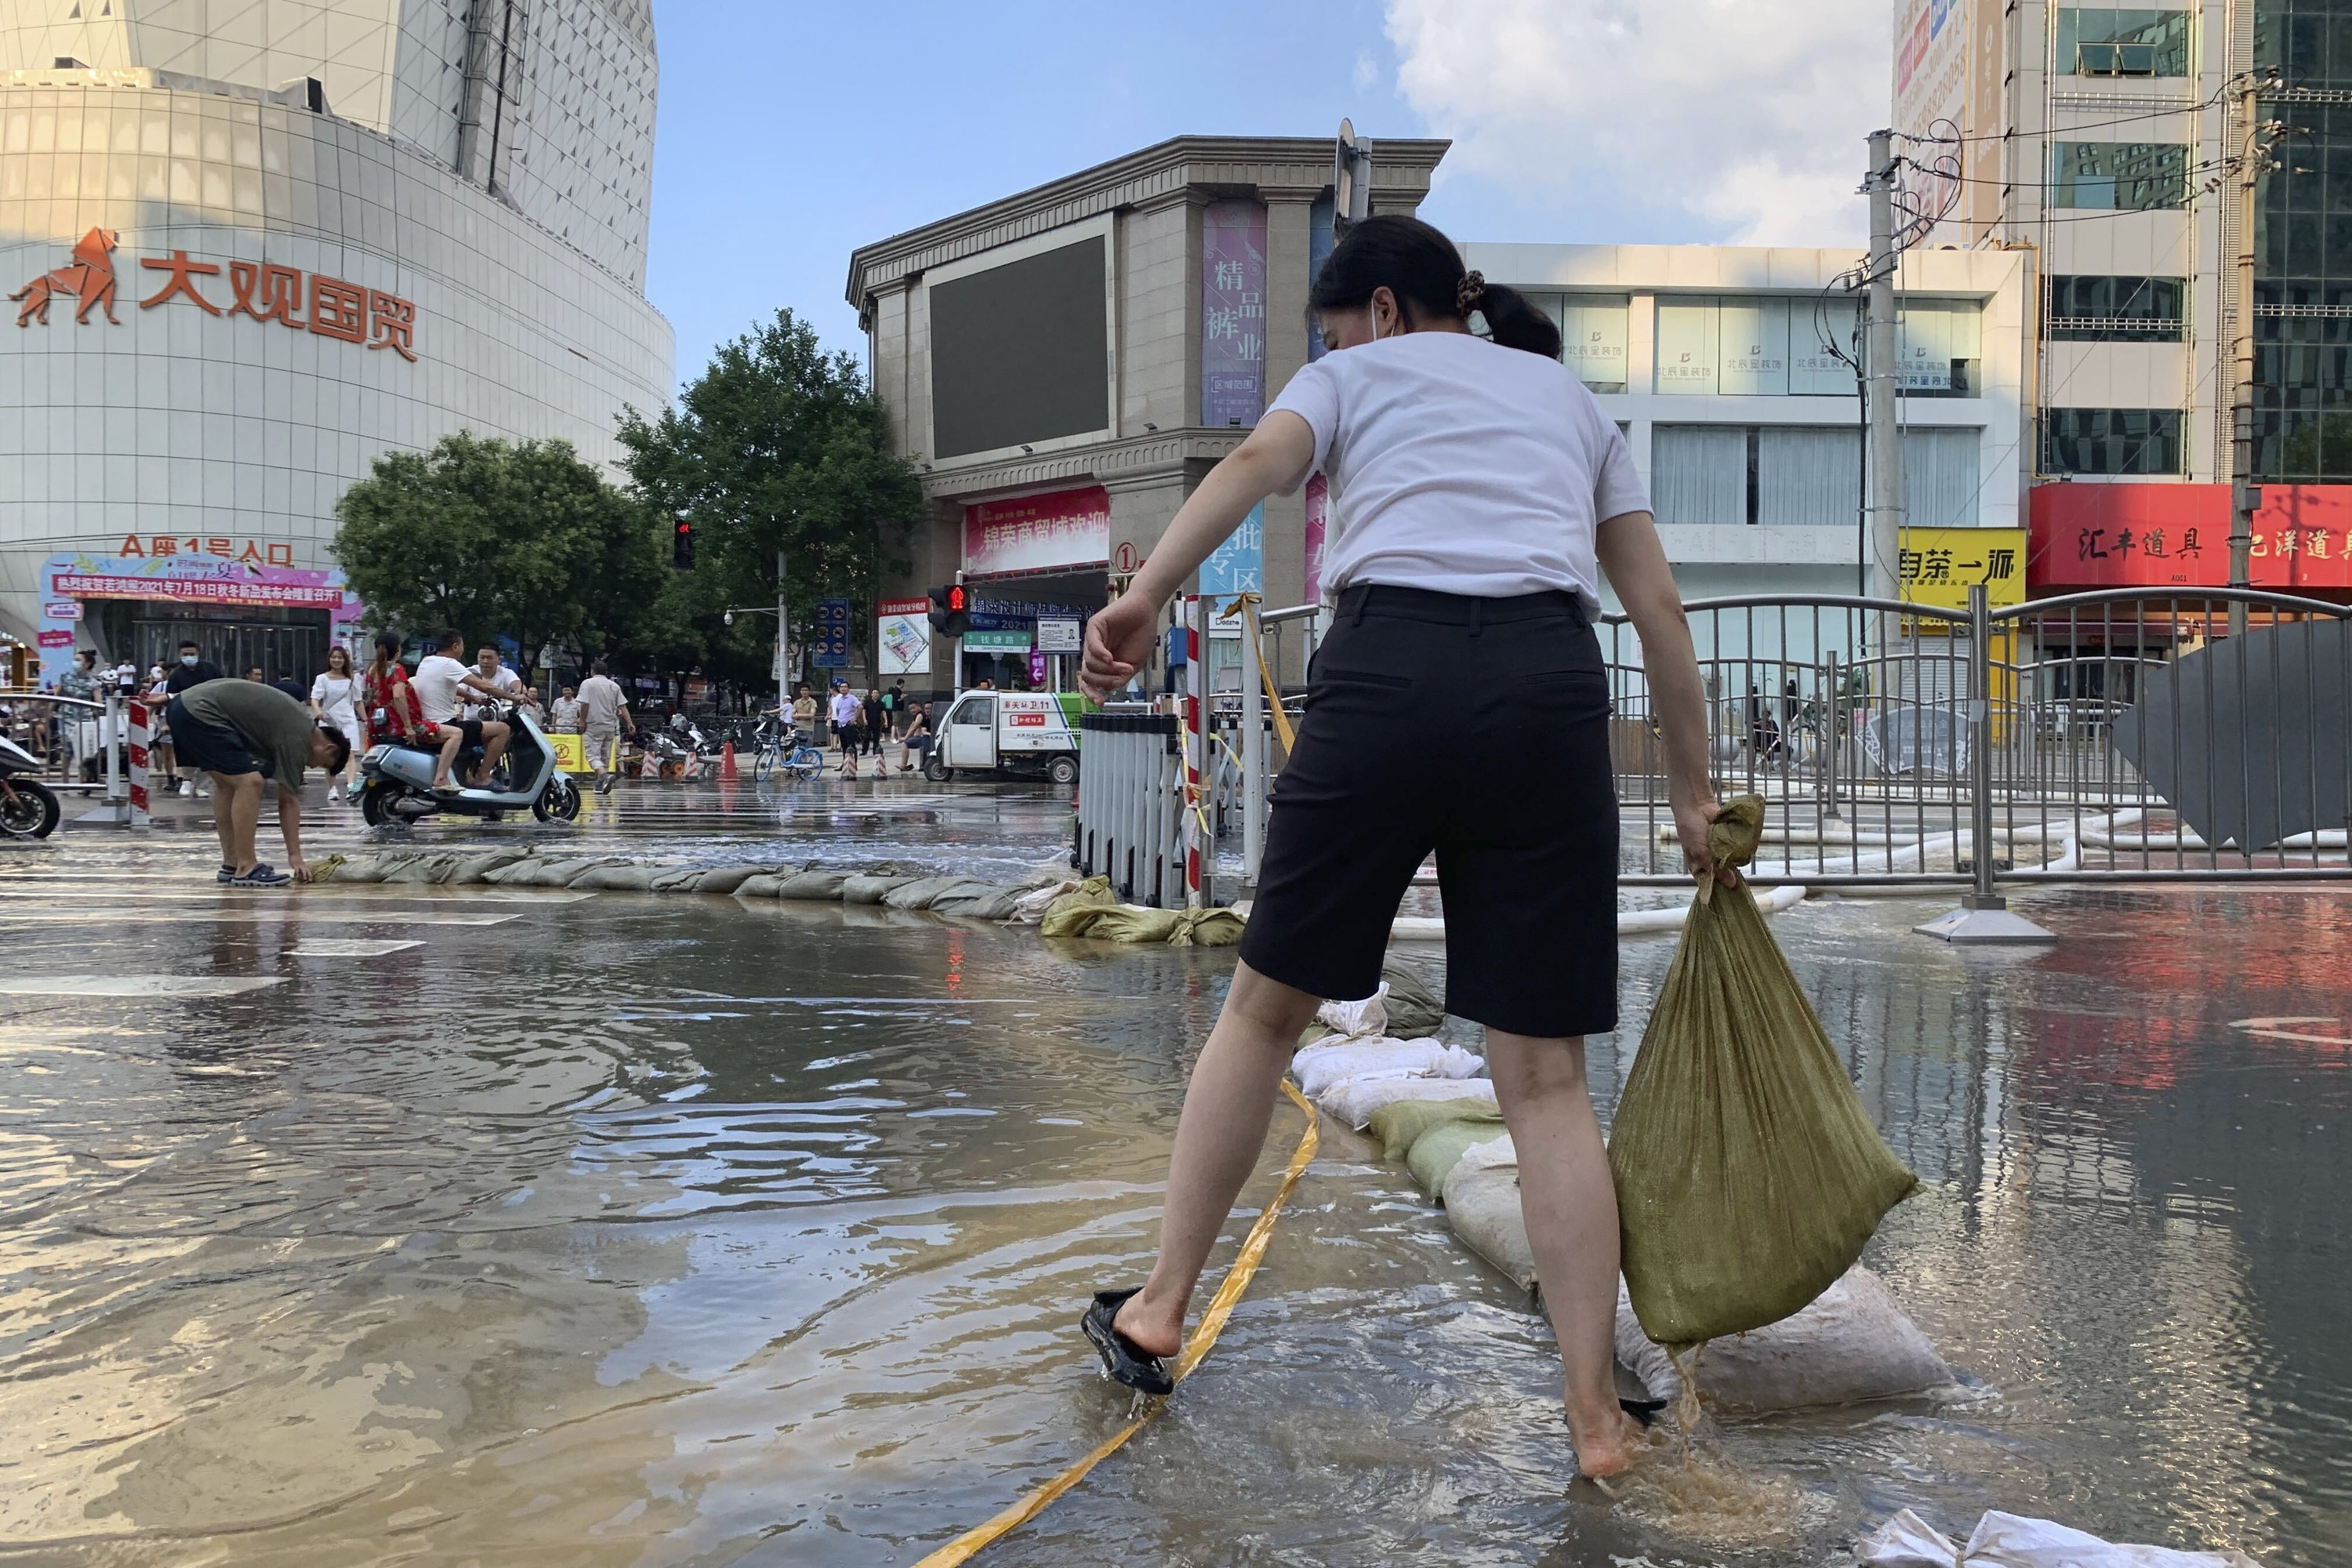 A woman moves a sandbag along a flooded road in the aftermath of the heaviest recorded rainfall in Zhengzhou, Henan province, central China, July 24, 2021. (AP Photo)